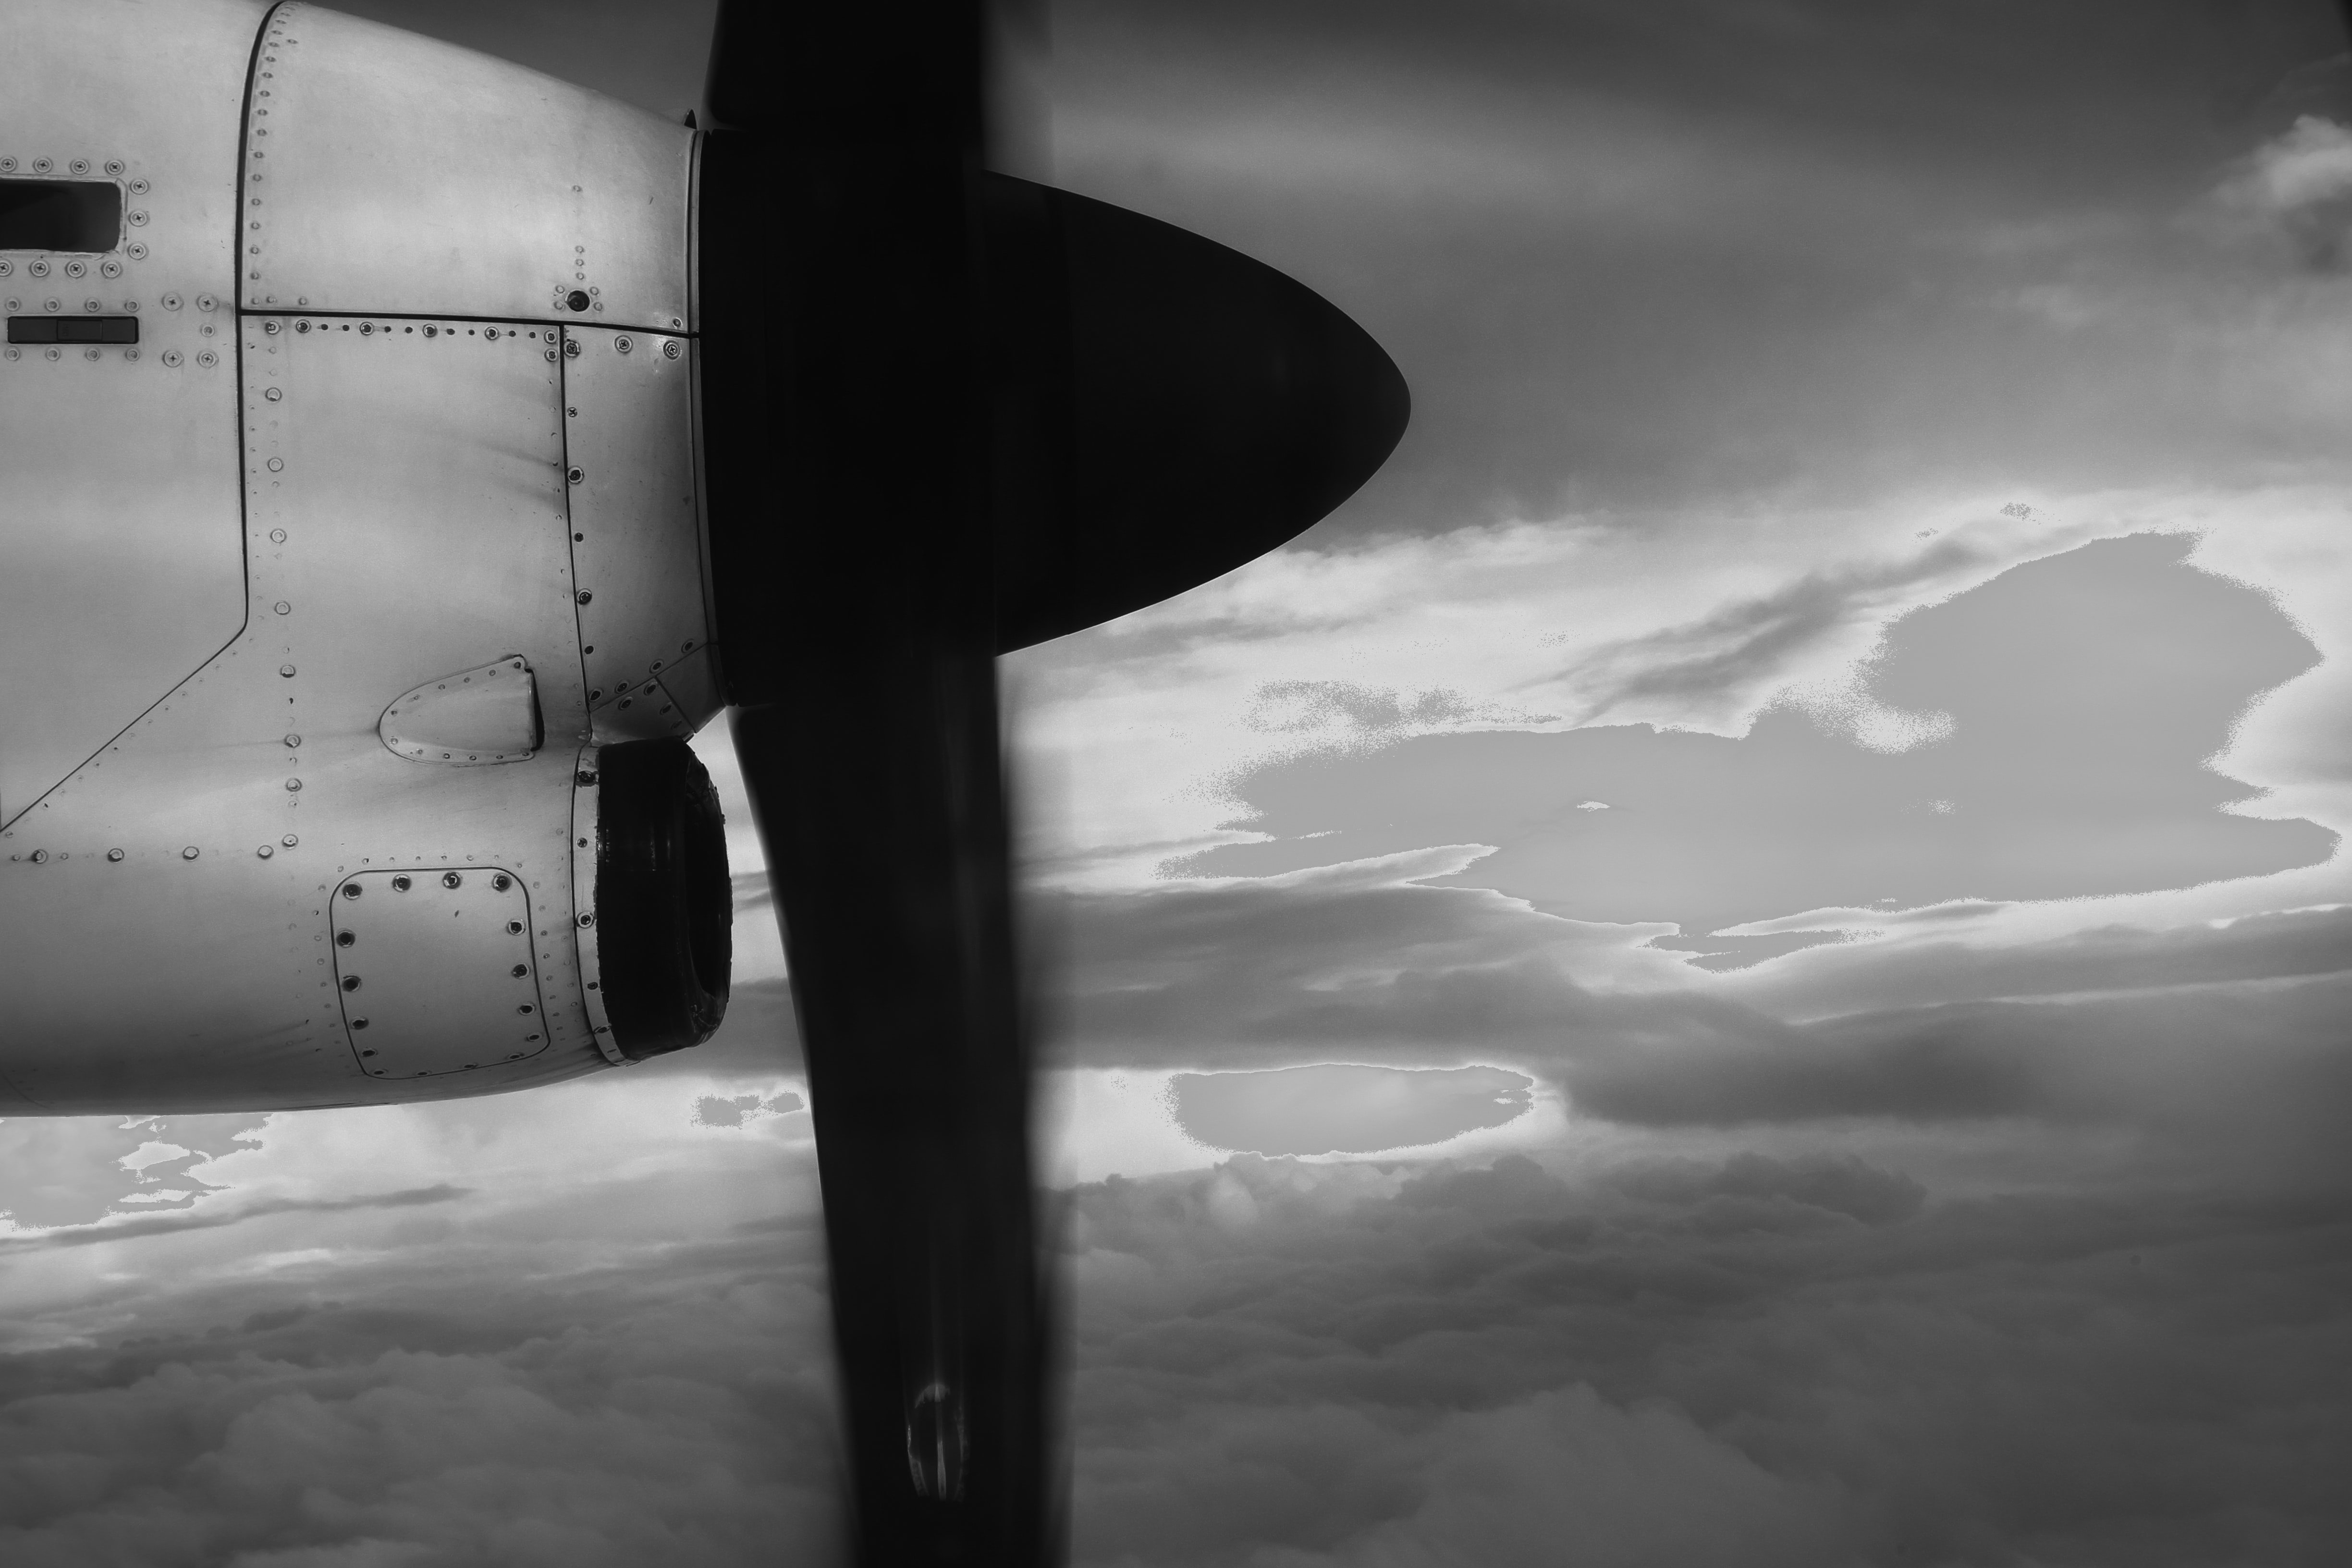 grayscale photo of plane propeller